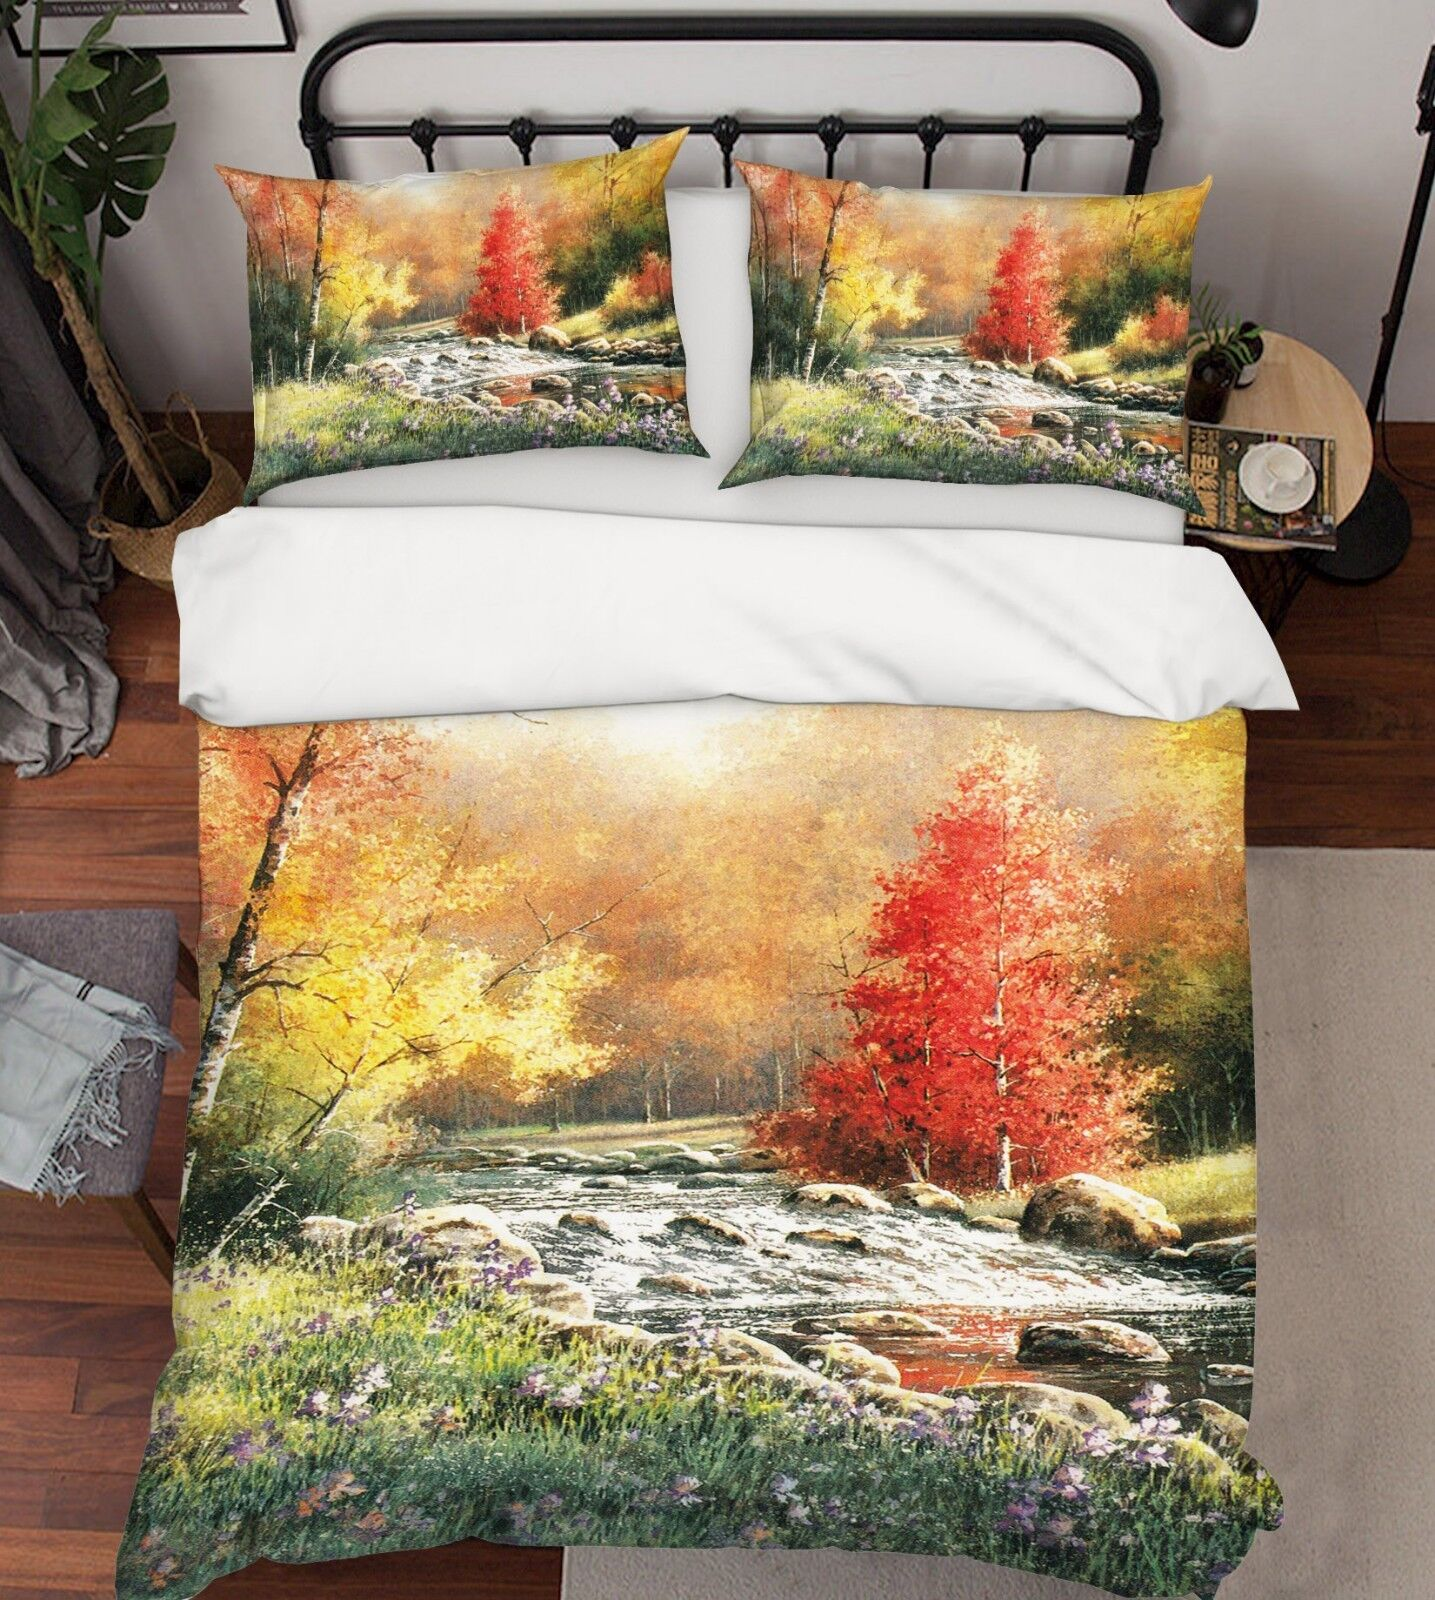 3d Forest Stones River 5 bett Cushion abdeckungs Stitch Duvet abdeckung Set Single DE